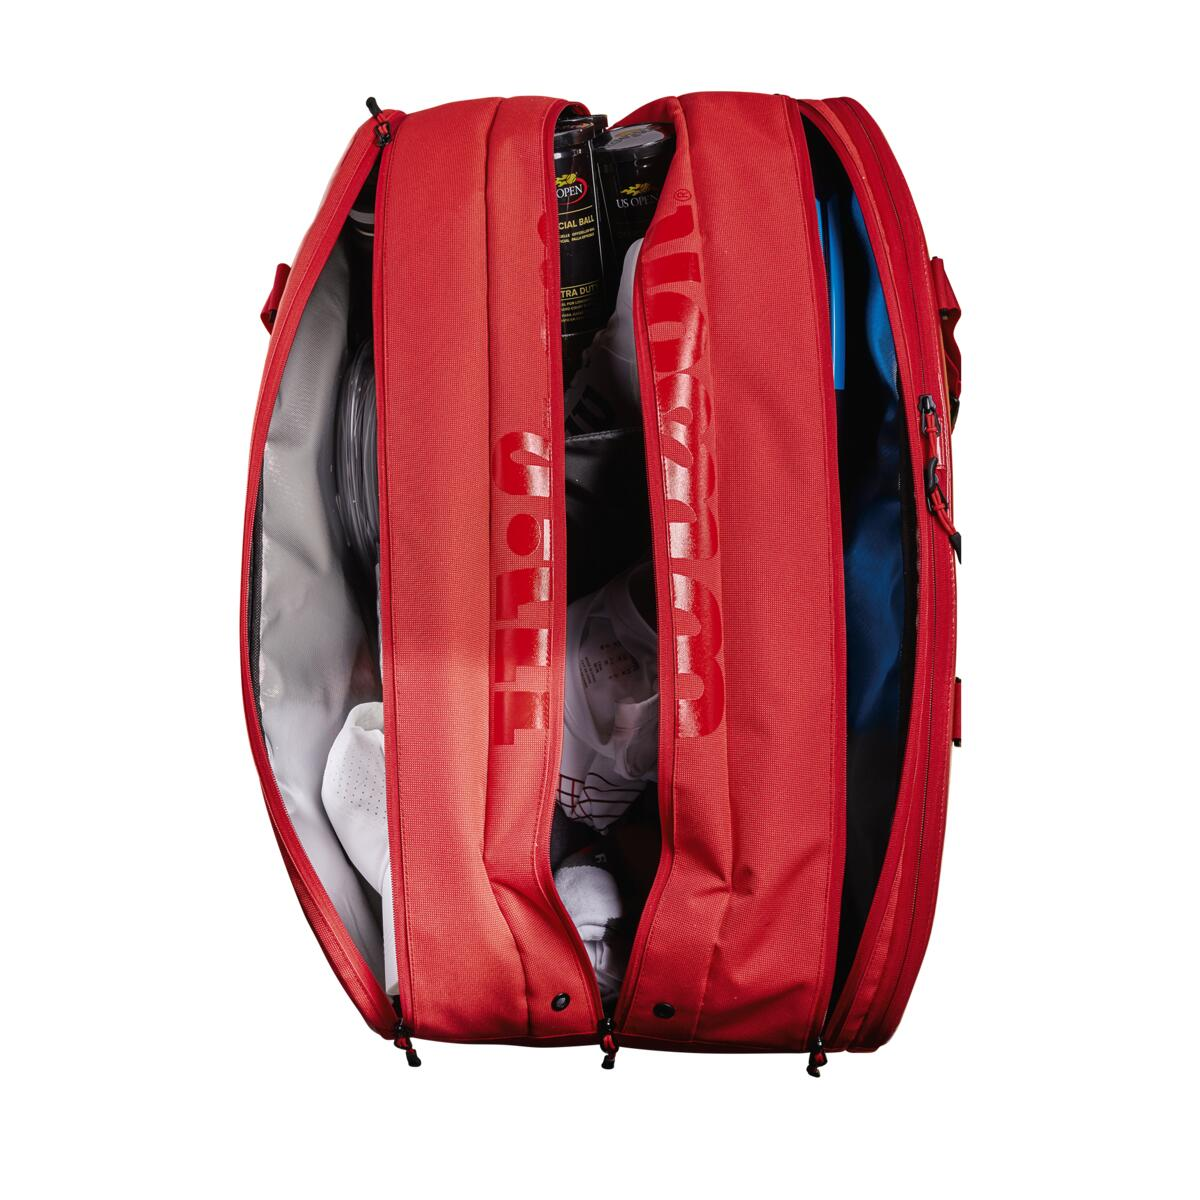 WRZ840815_7_Super_Tour_3_Comp_RD_Removable_Straps_Detail_0709.png.cq5dam.web.1200.1200